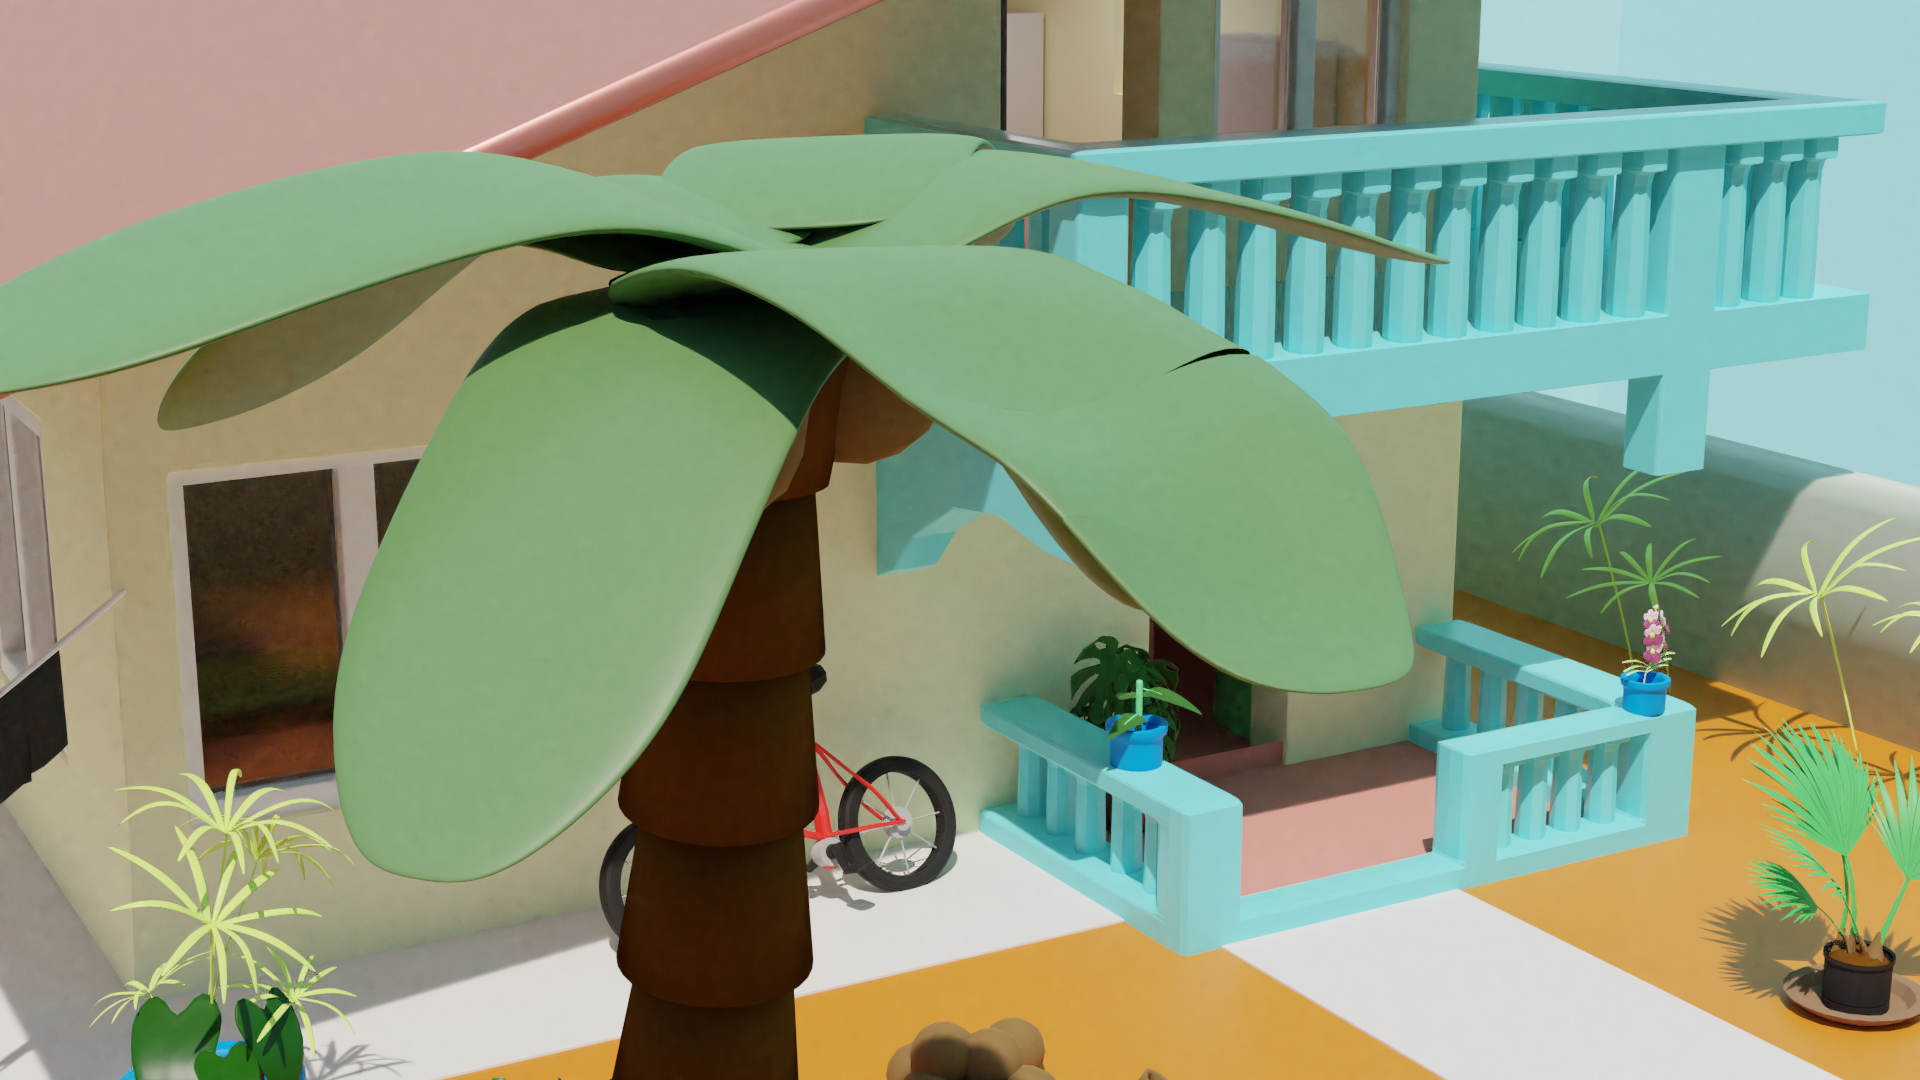 Another shot of the front of the house from above, with a coconut tree as the main focus of the scene.